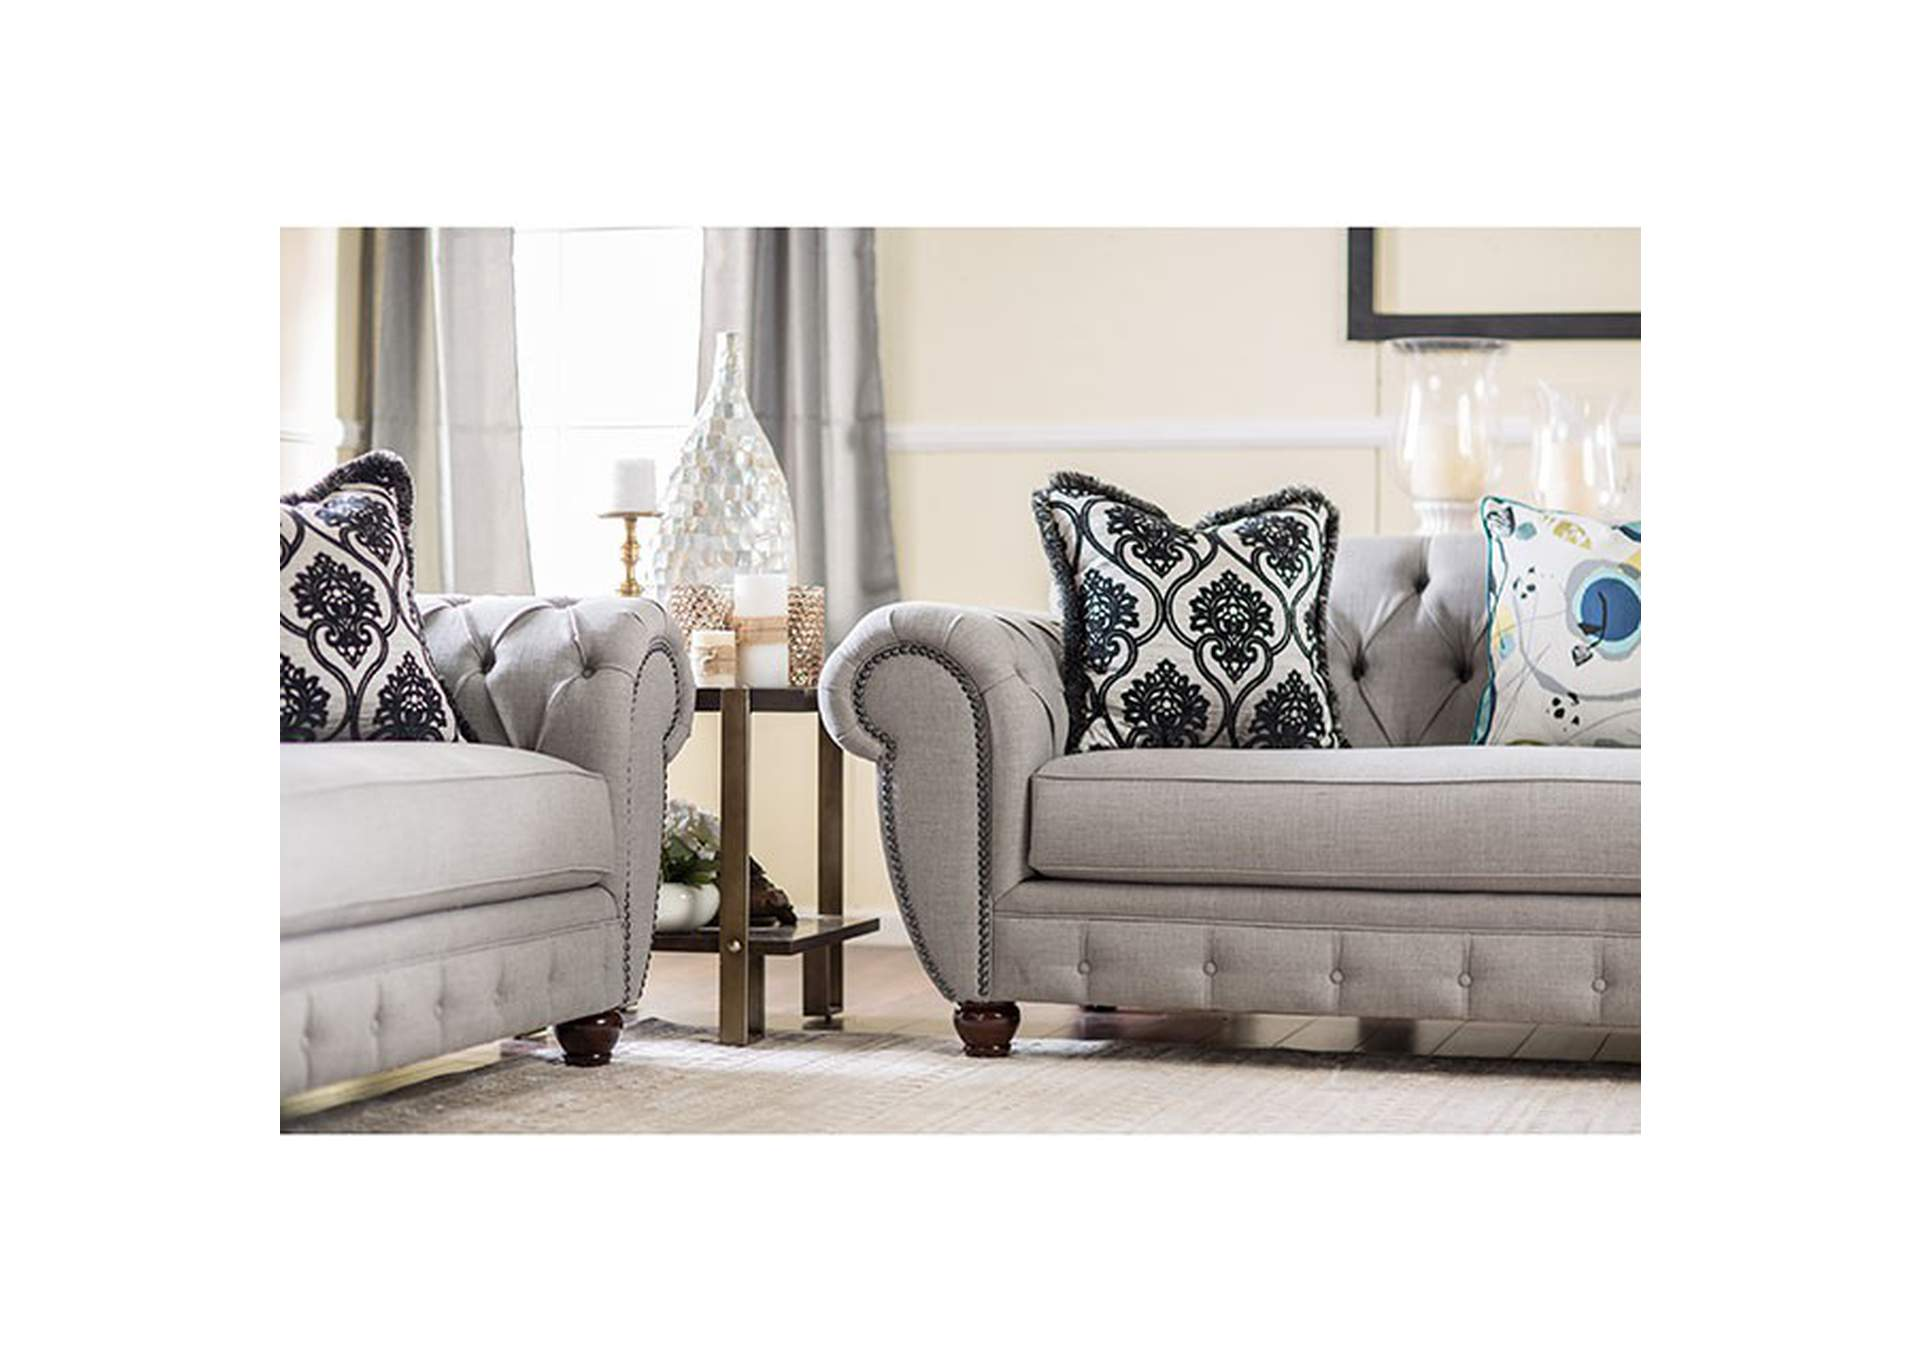 Vivianna Gray Tufted Sofa w/Pillows,Furniture of America